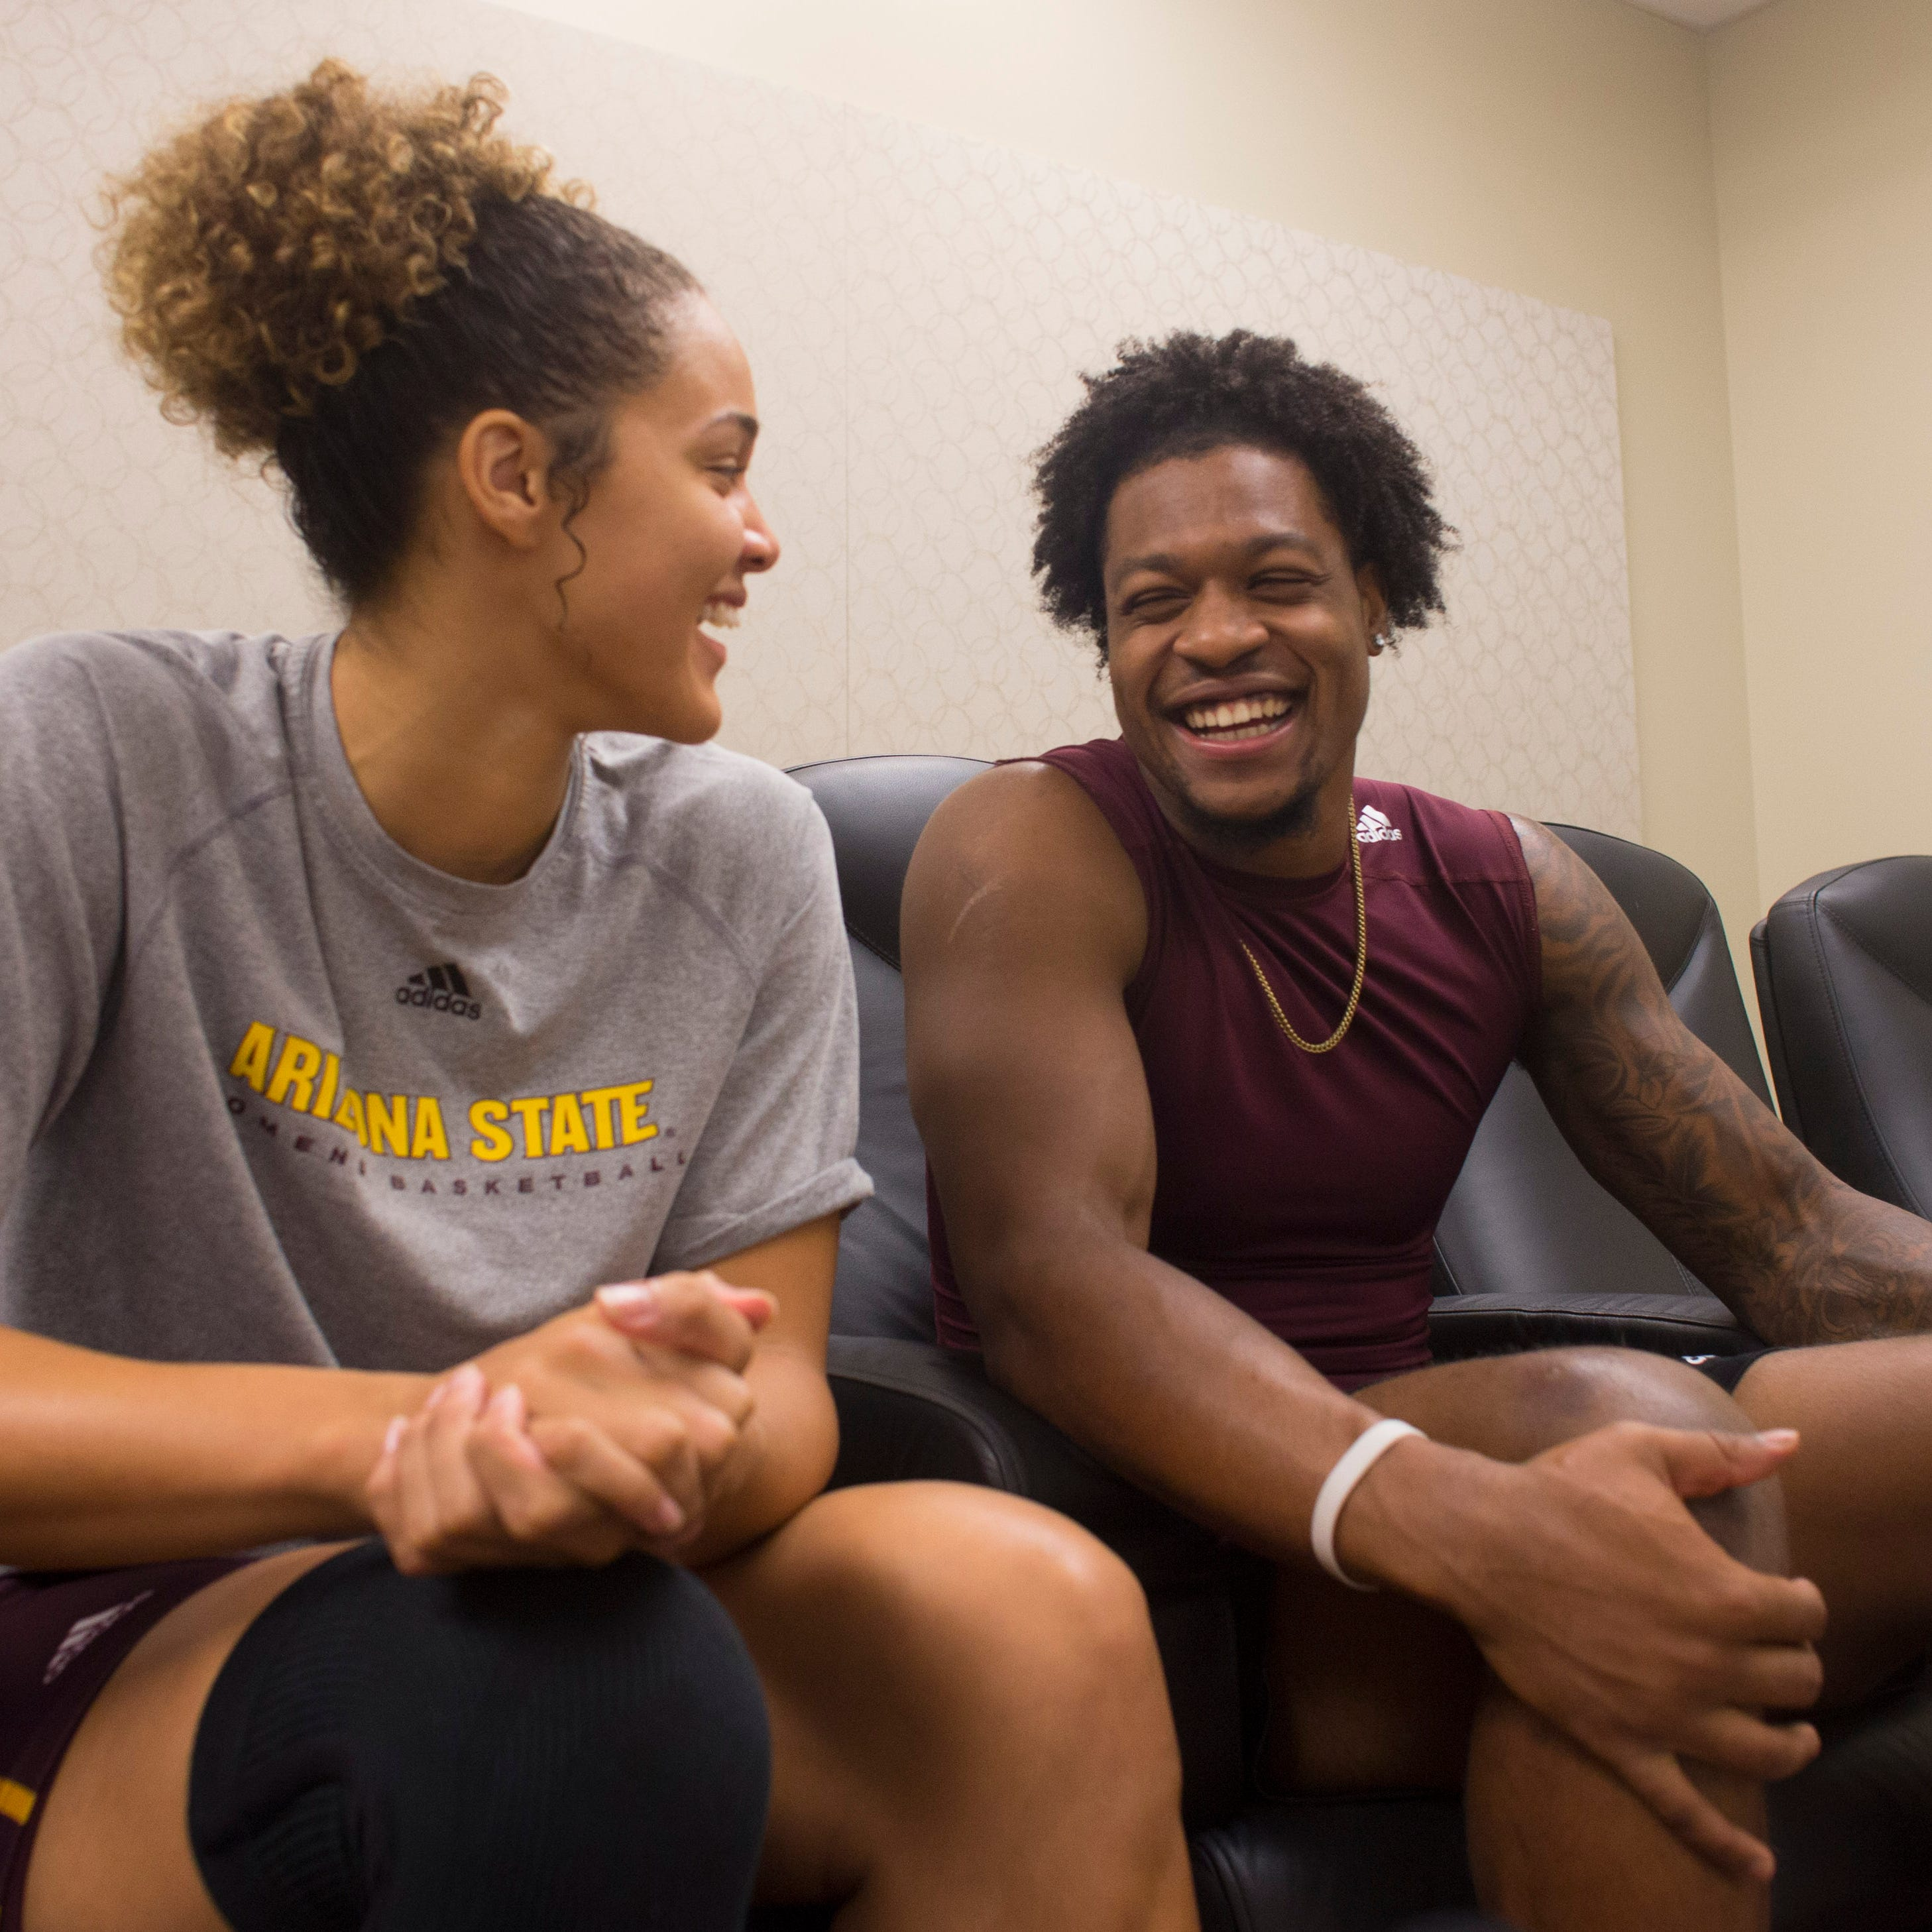 Catching feelings: ASU stars N'Keal Harry, Kianna Ibis lean on each other for support